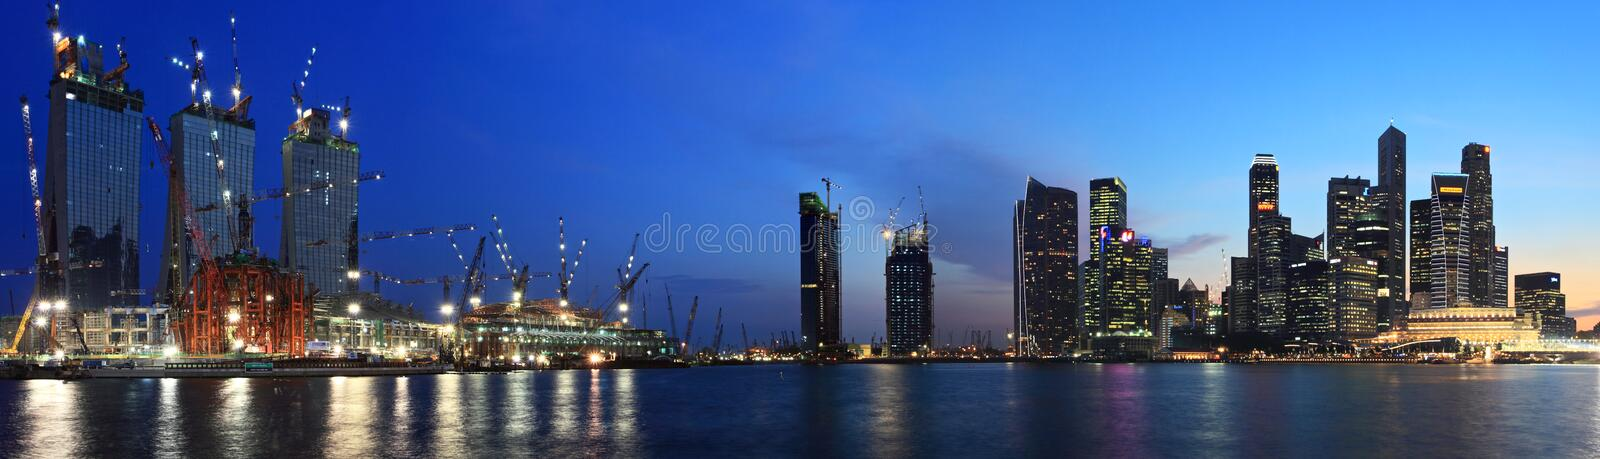 Panorama Of Night View Of Singapore City stock images